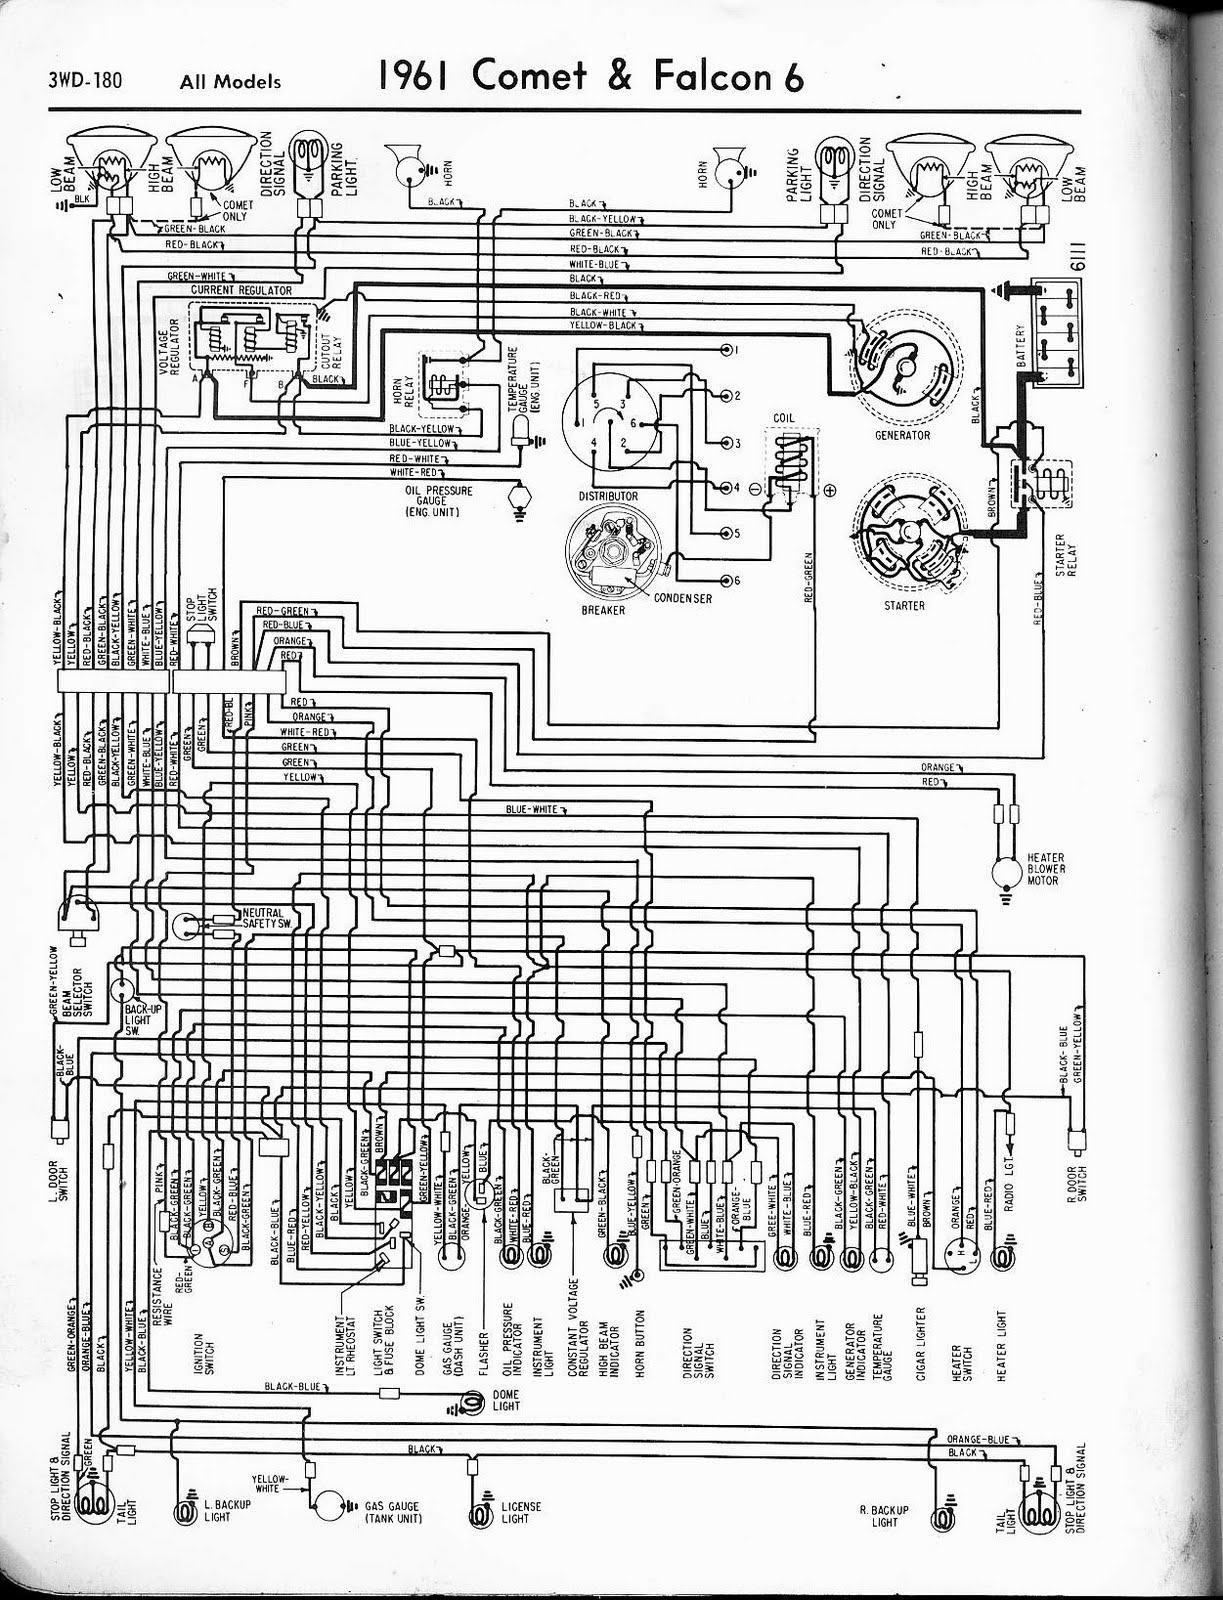 Free Auto Wiring Diagram  1961 Ford Falcon  U0026 Comet Wiring Diagram